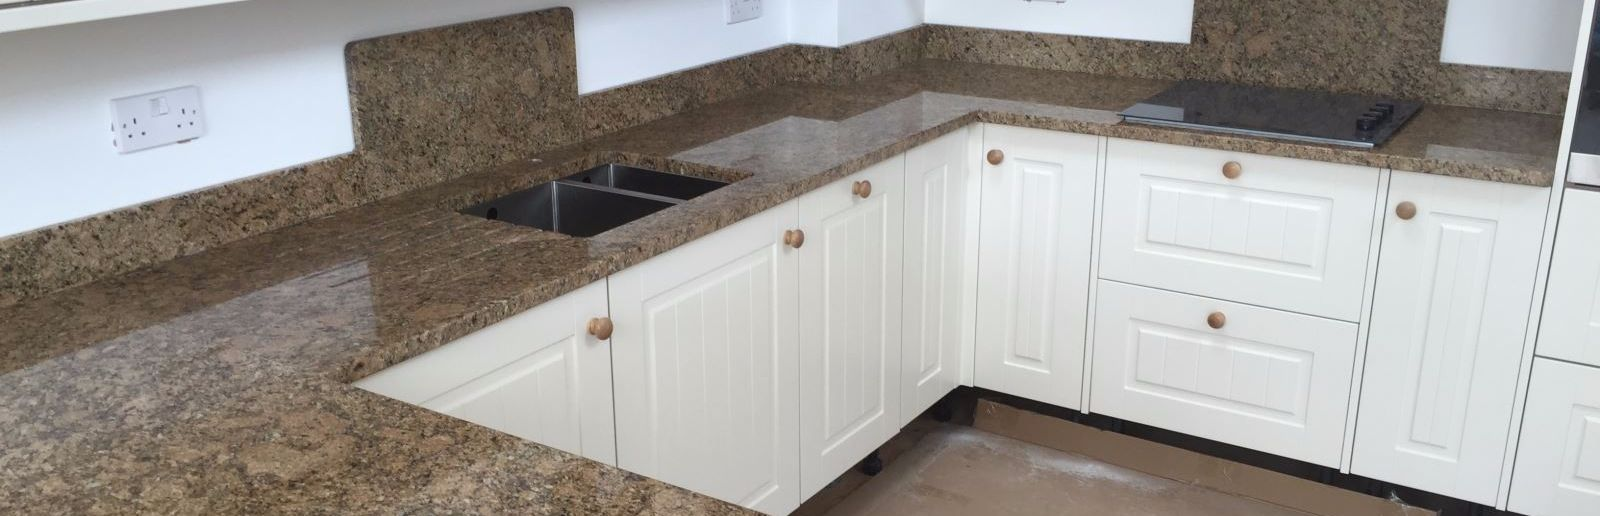 Granite kitchen worktops - choose your Stone and we'll create your kitchen worktops